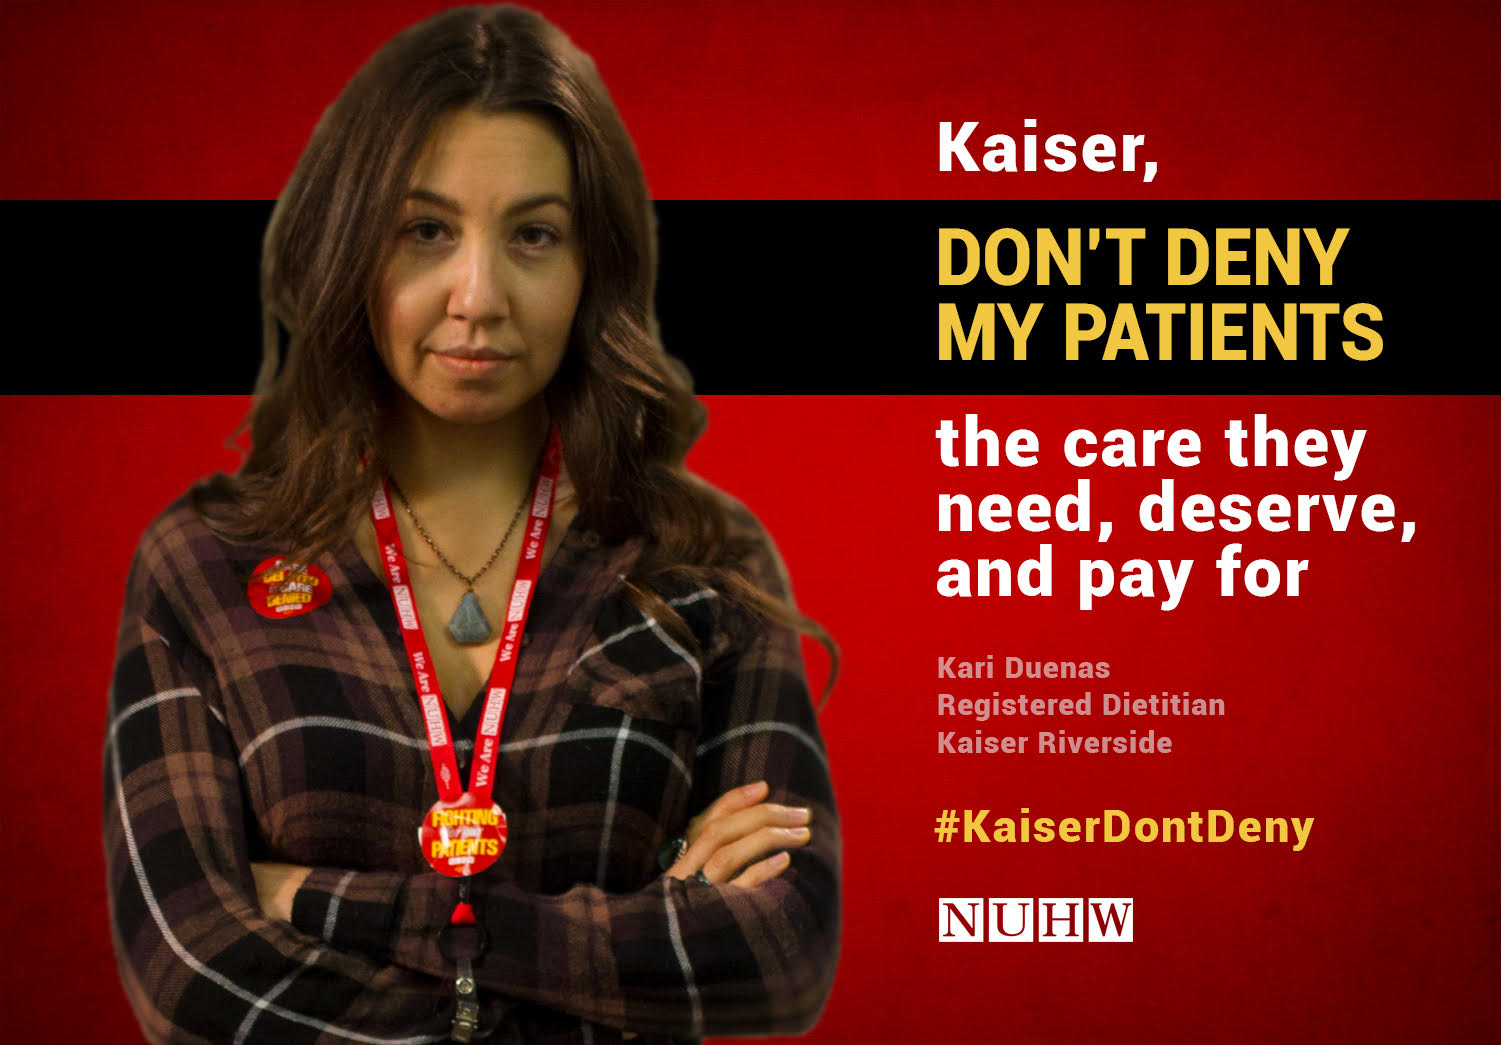 Kaiser, don't deny my patients the care they need, deserve, and pay for. -- Kari Duenas, Registered Dietitian, Kaiser Riverside